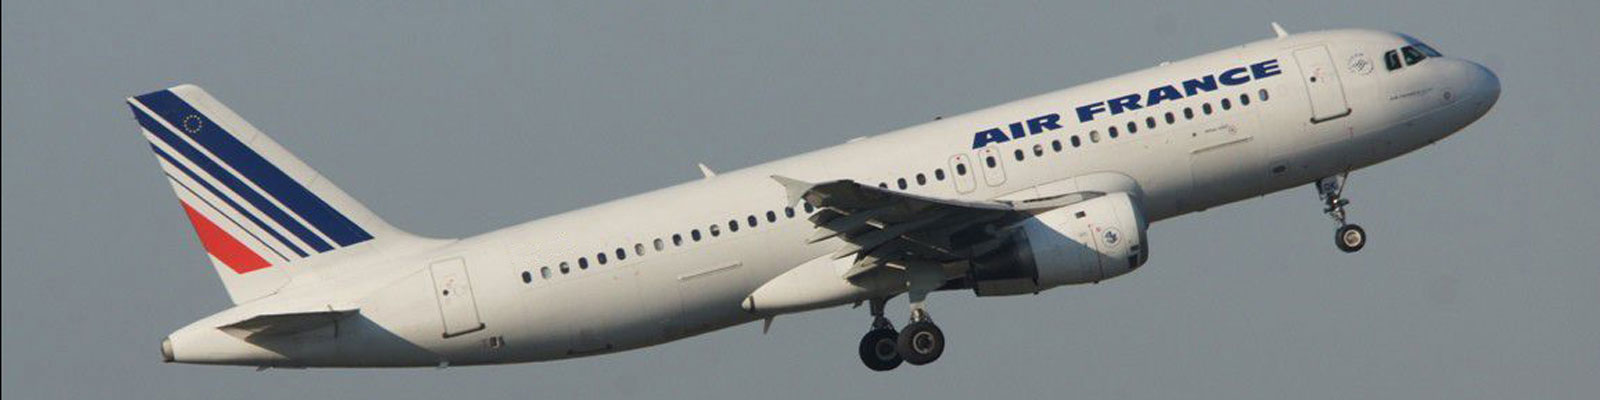 Kevin-McClouds-Airbus-A320_2